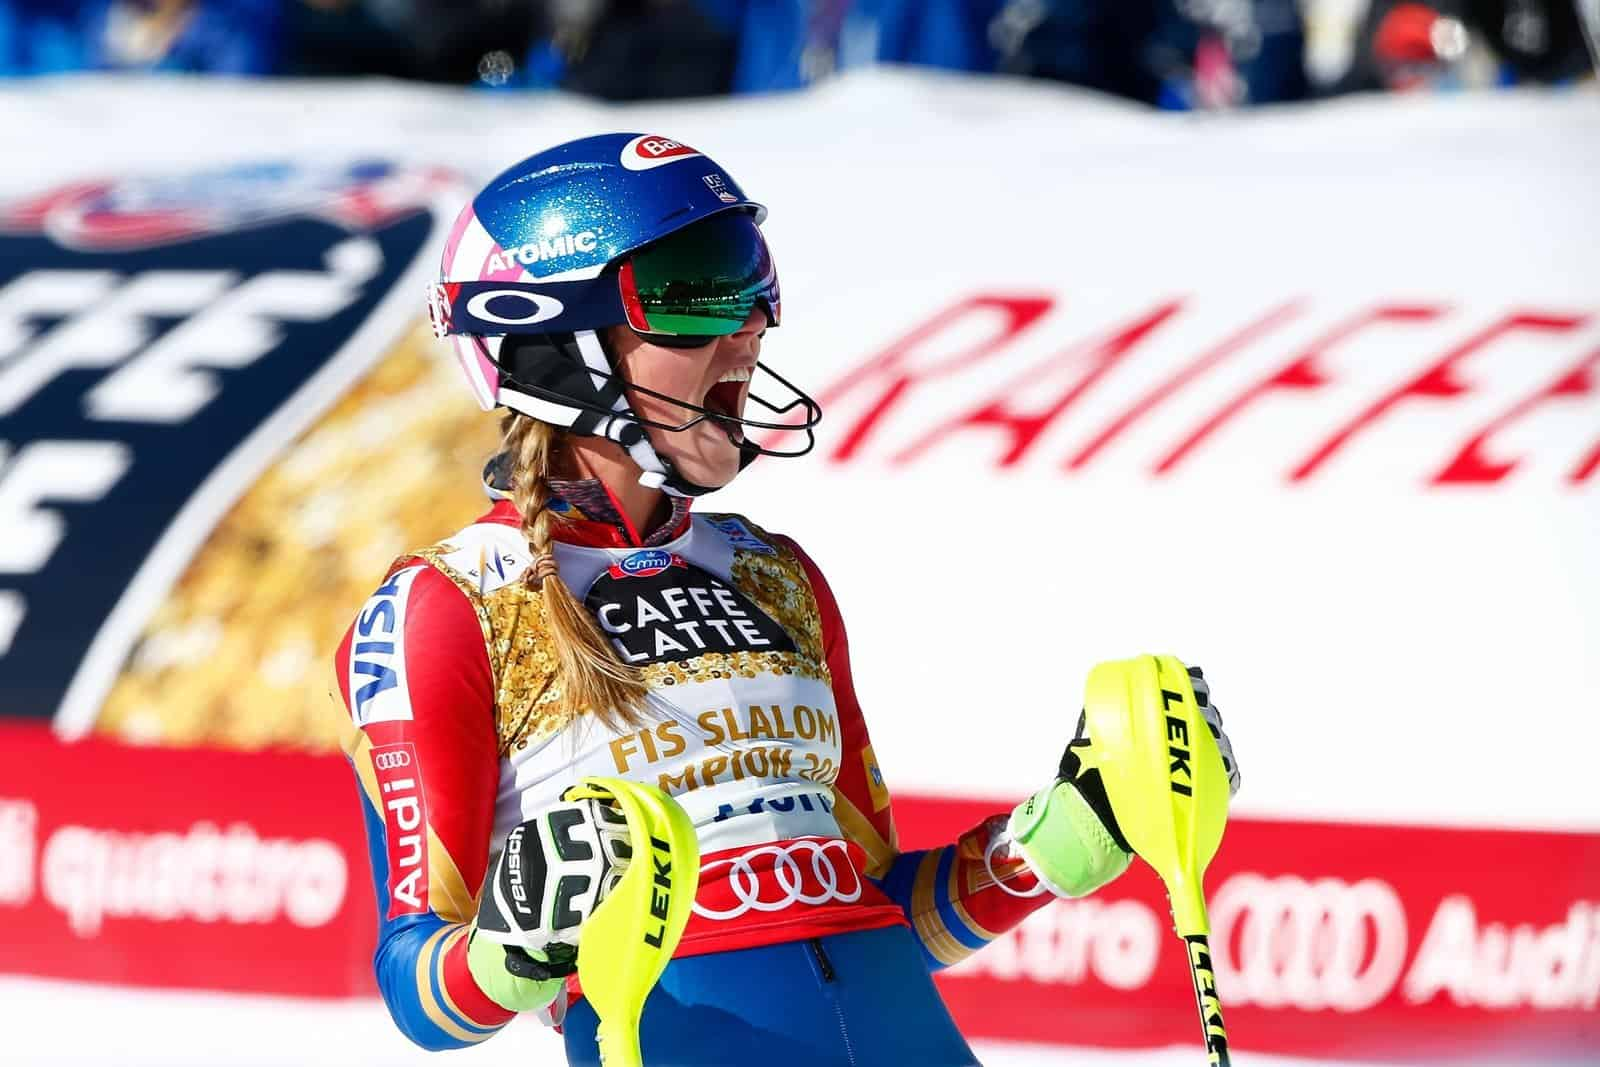 Women's Alpine Skiing - 2017/18 Season Betting Preview + Predictions